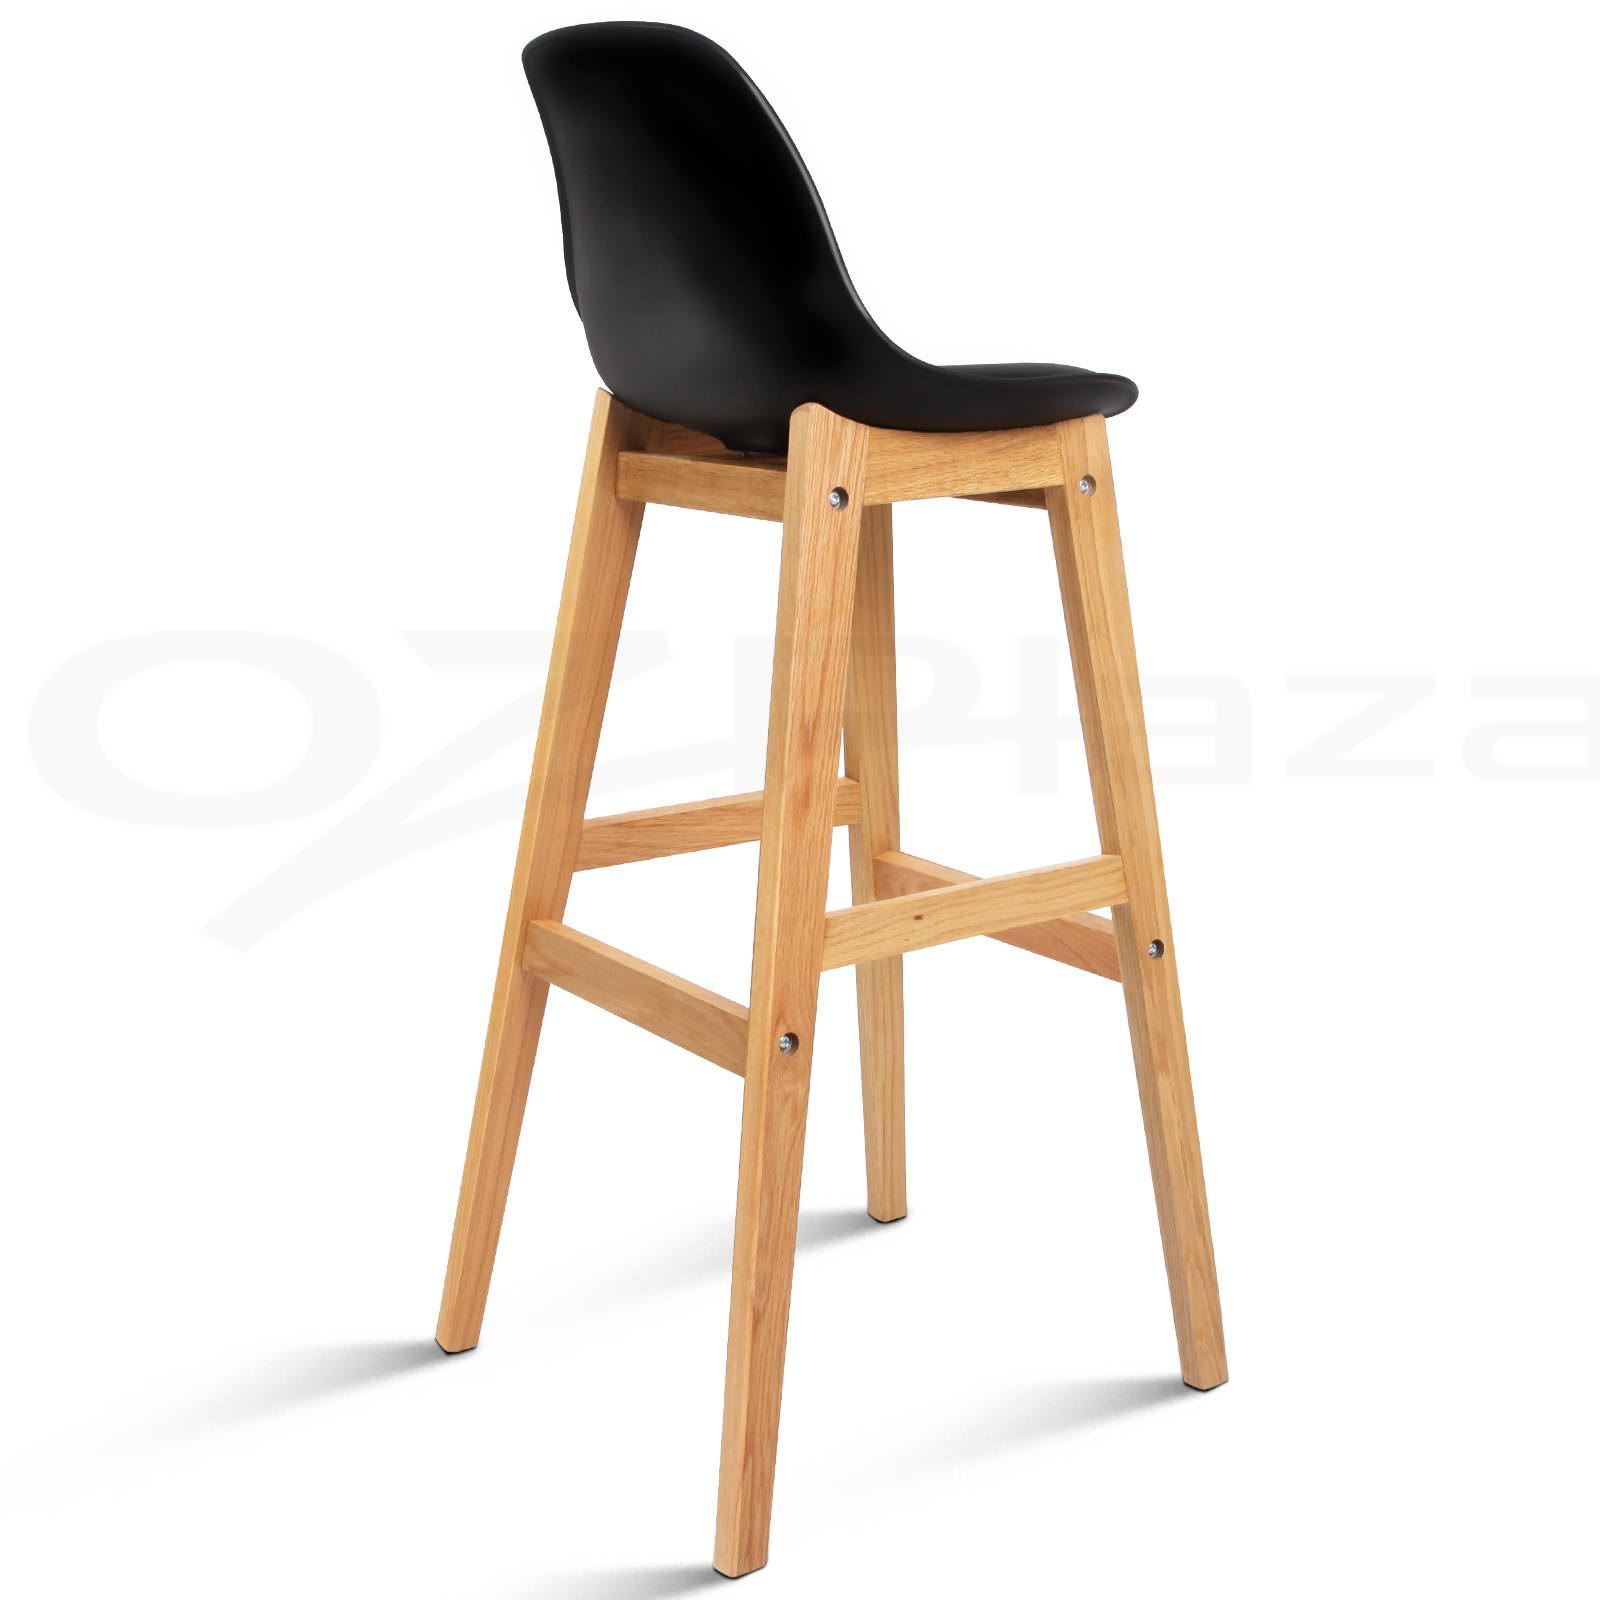 Oak wood bar stools wooden dining chairs kitchen